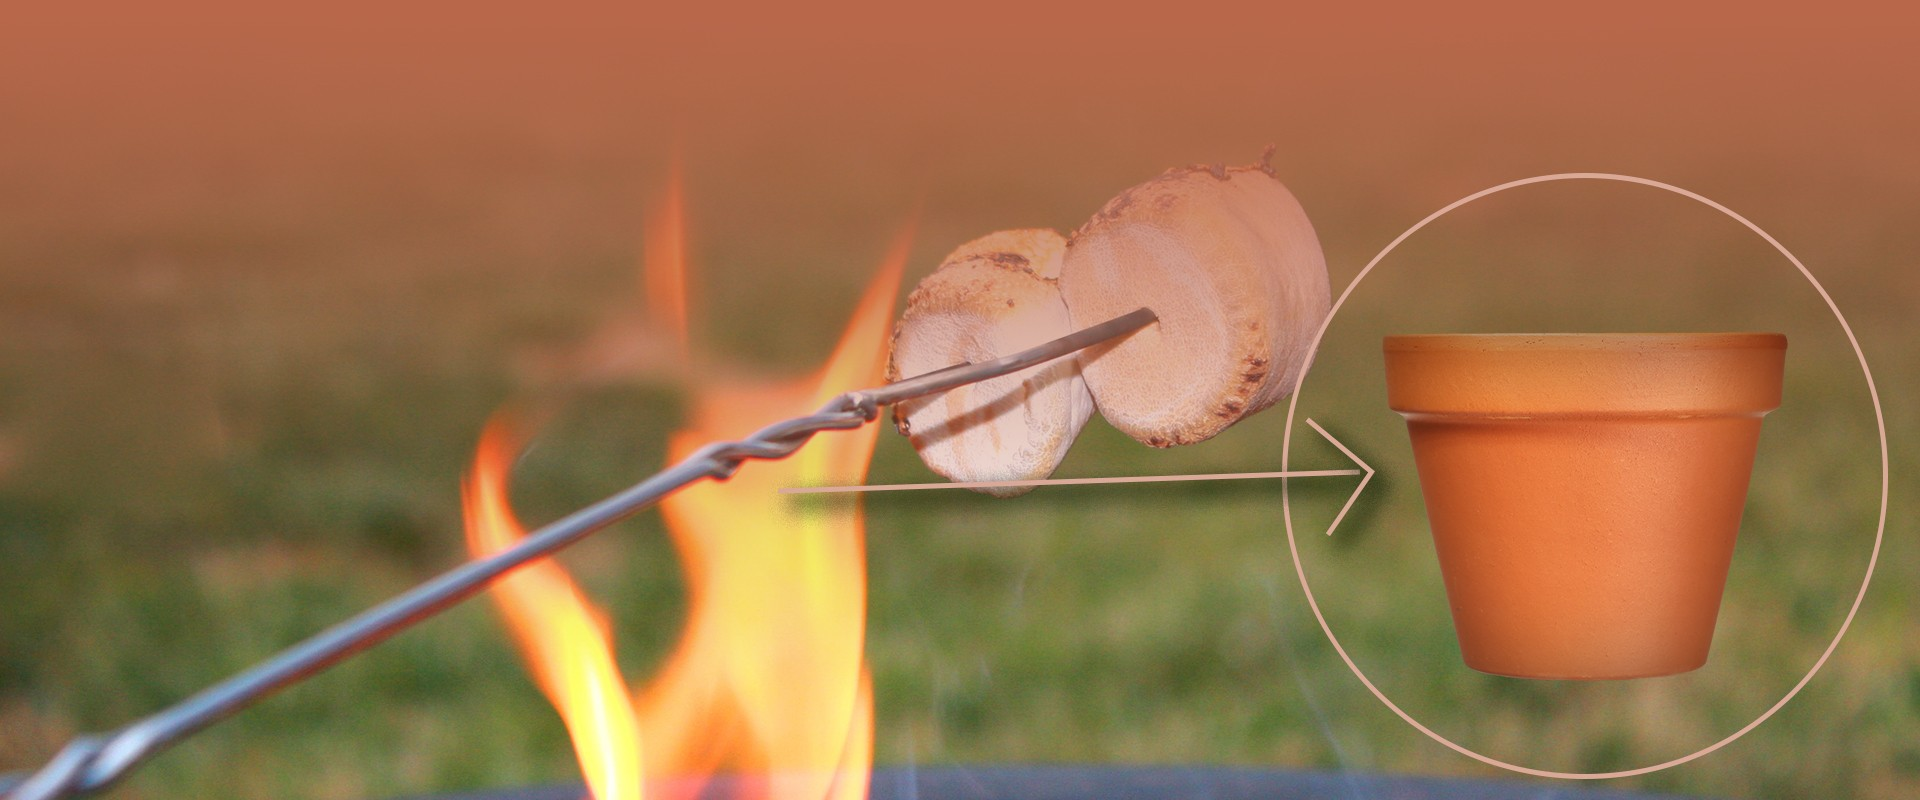 Keep all your marshmallow roasting sticks together in a terracotta pot holder